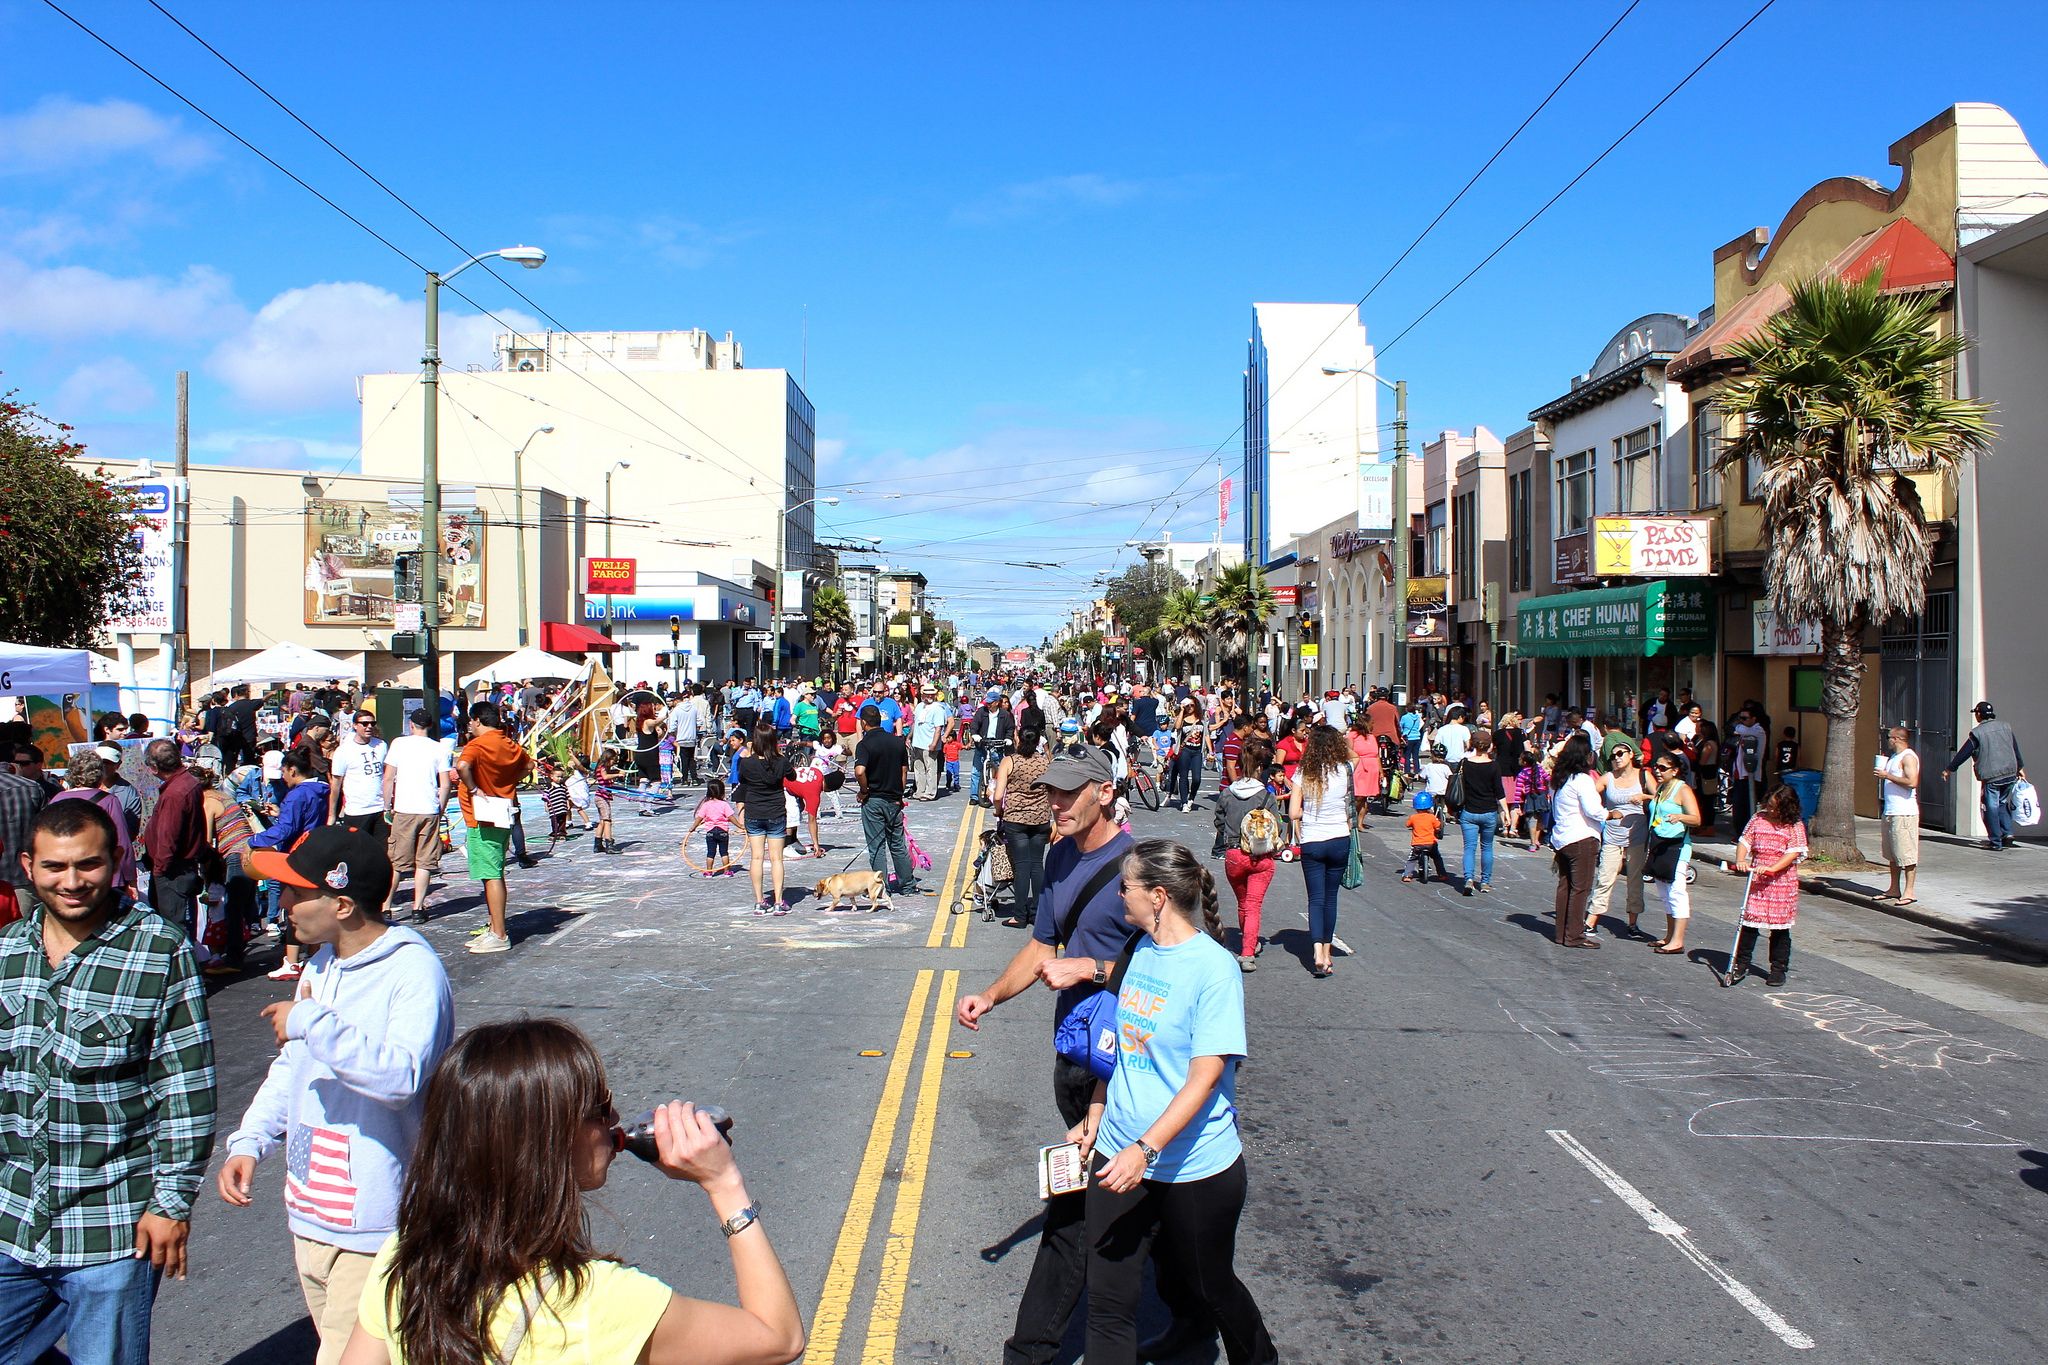 People enjoying Sunday Streets in the Excelsior